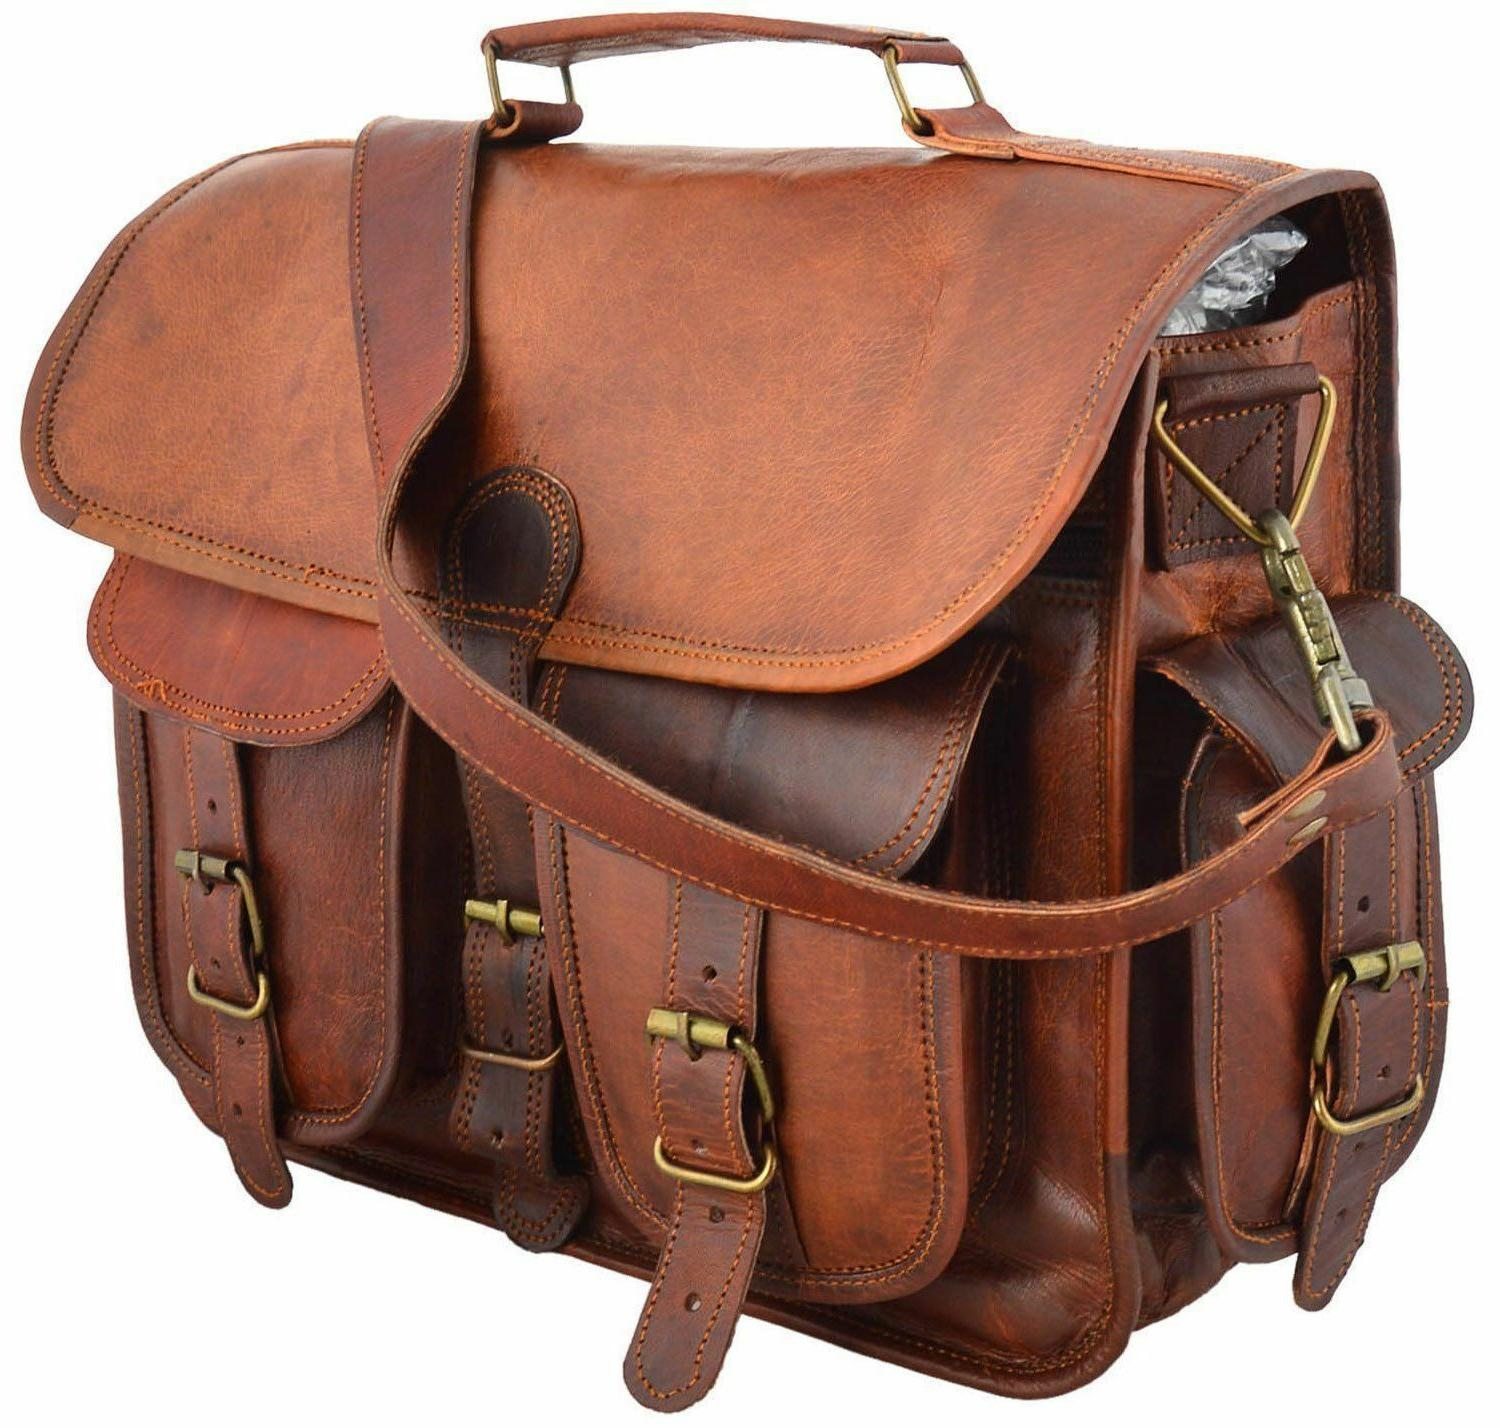 "15"" Large Leather MESSENGER bag for men shoulder bag mens La"